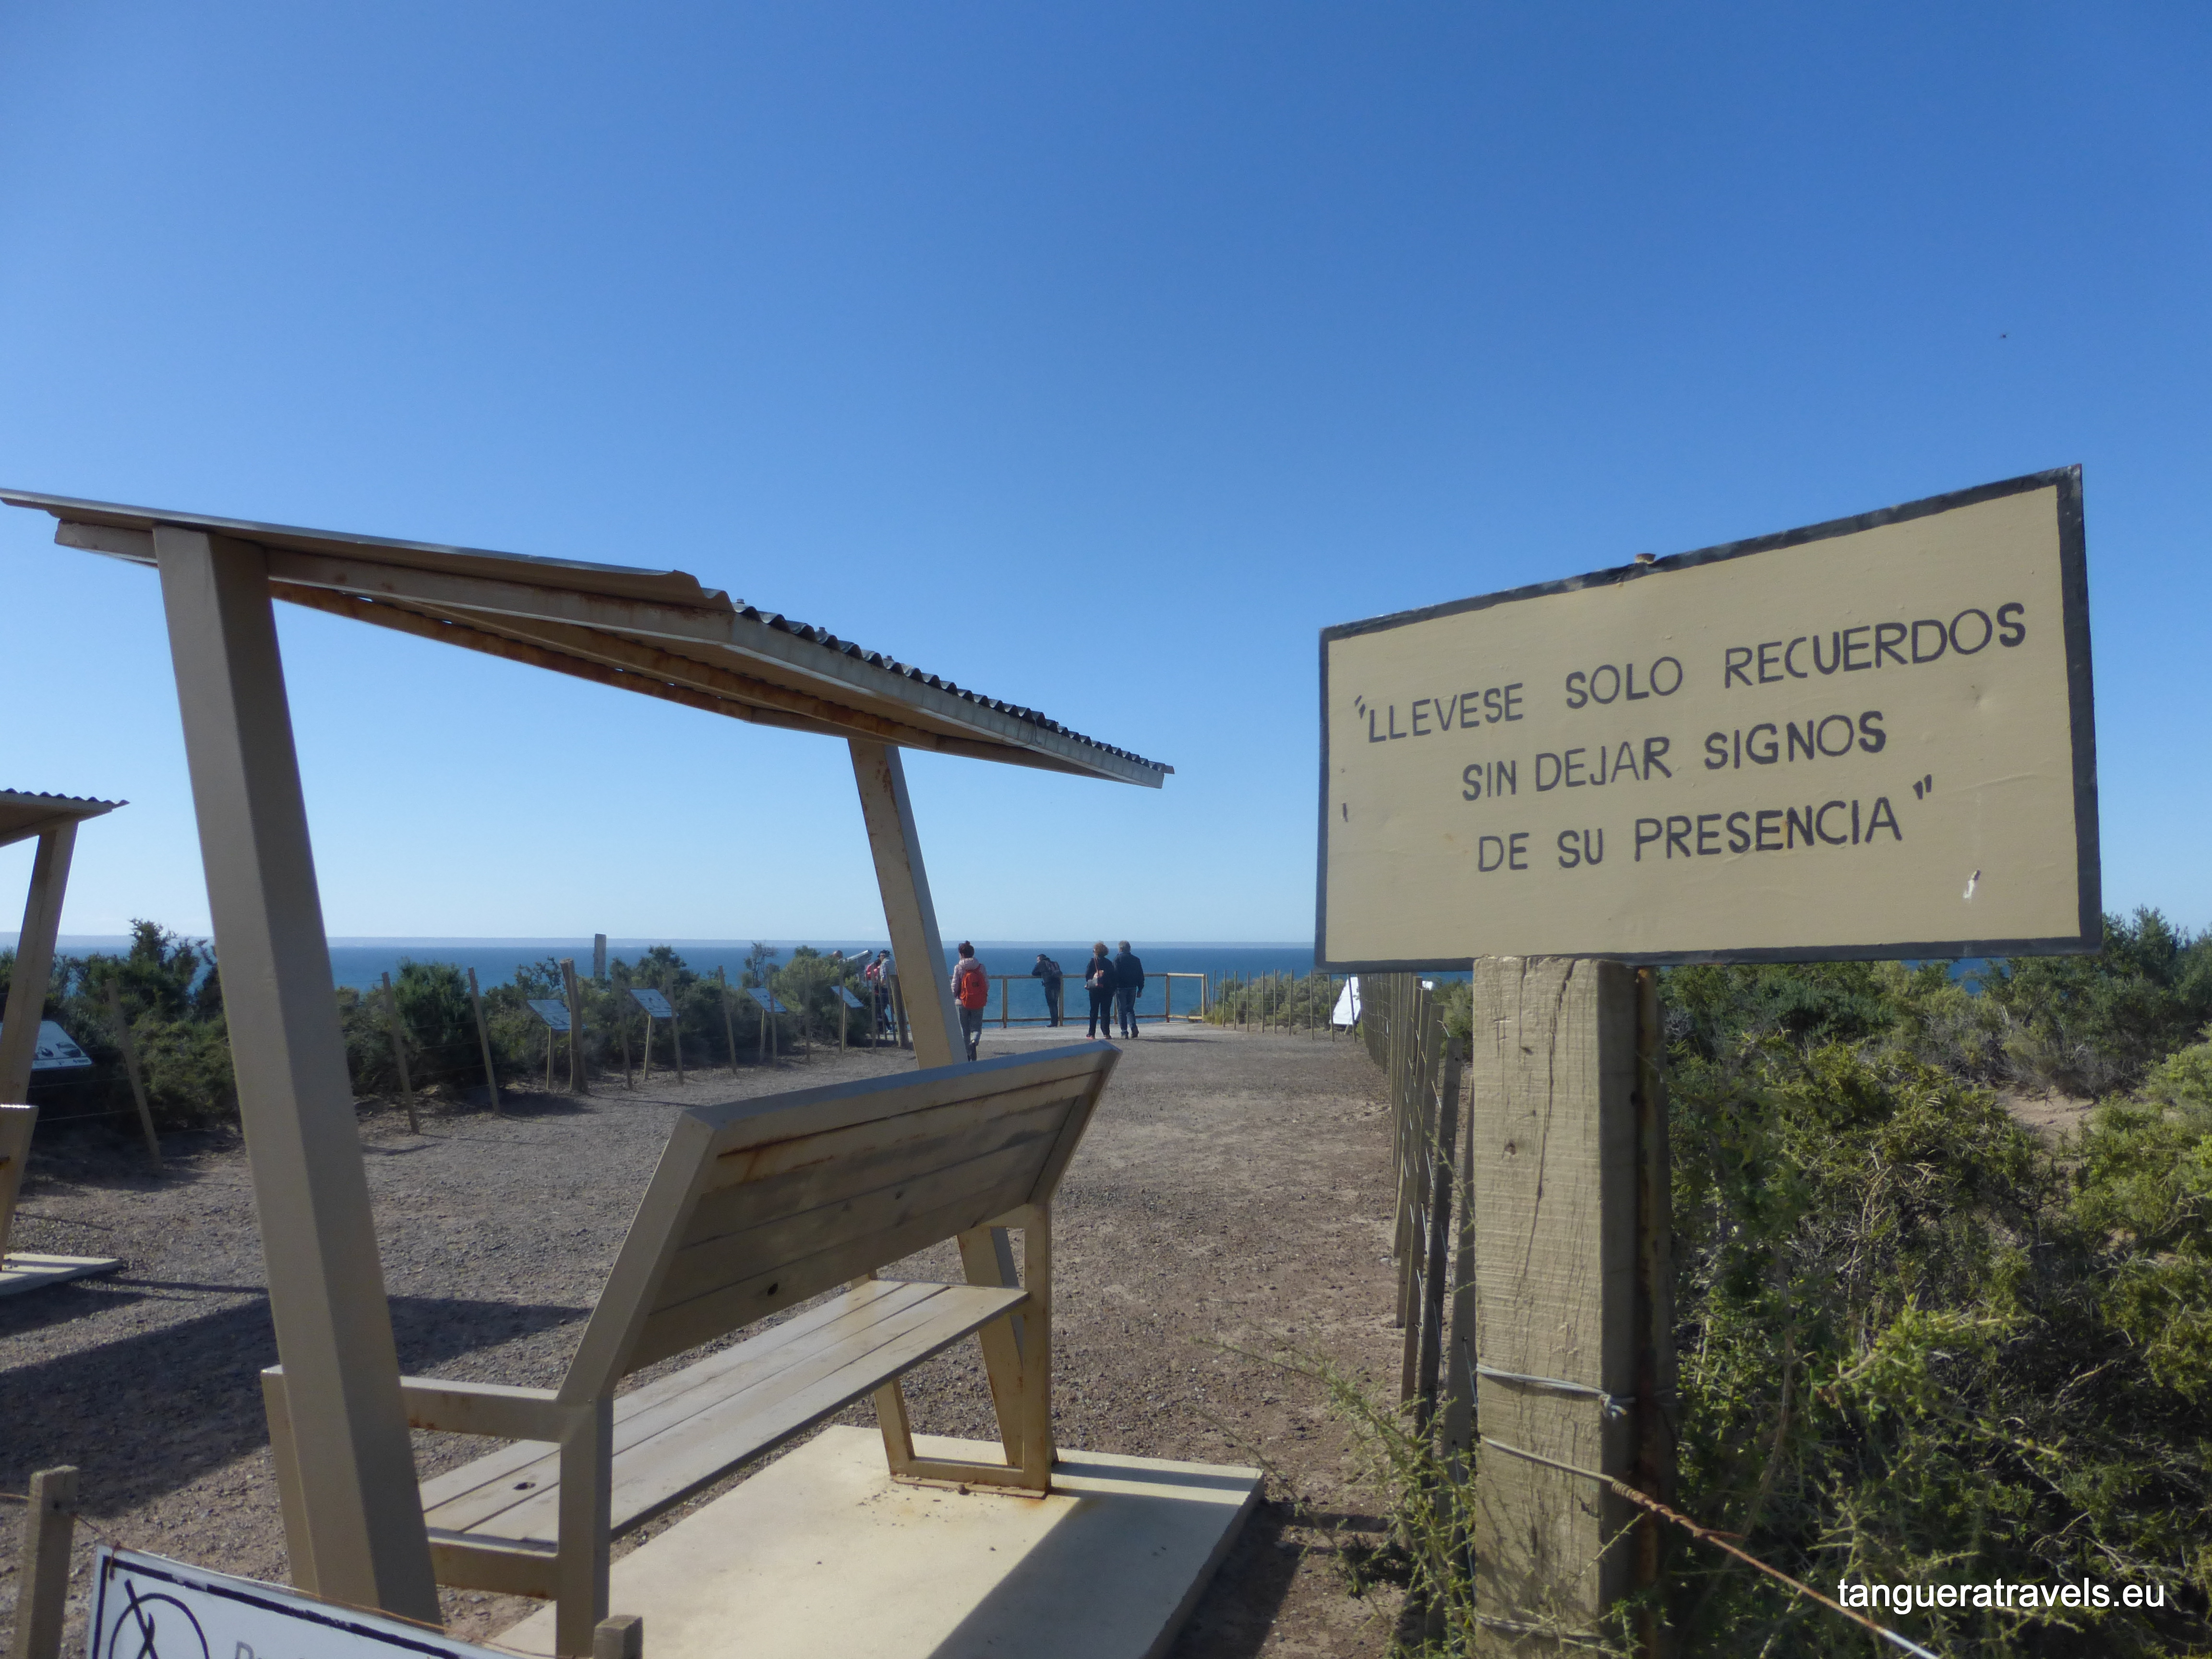 Sign at Punta Loma, asking the visitor to take only memories and leave no signs of their presence